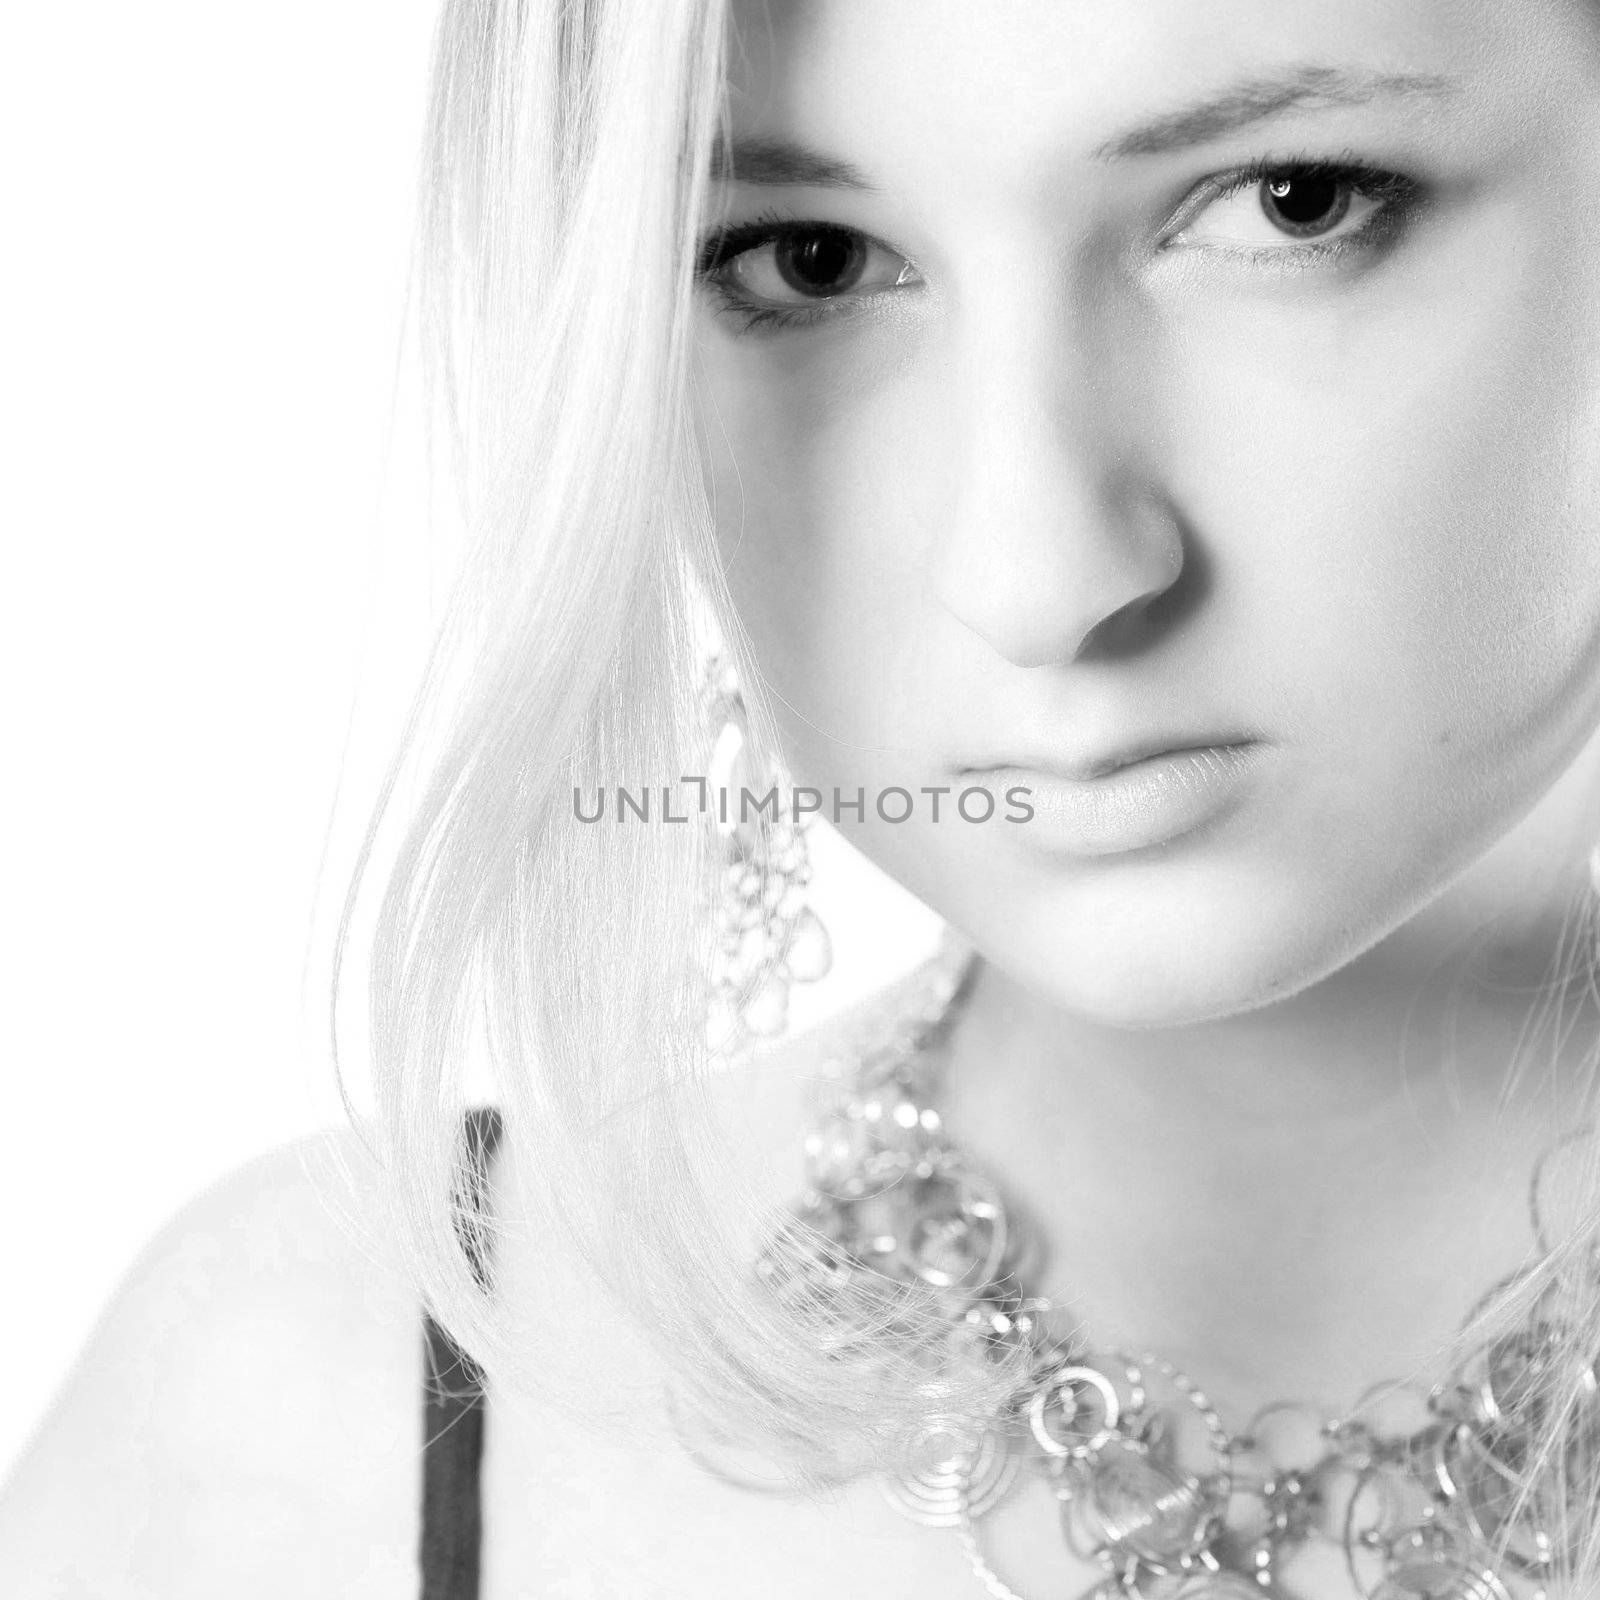 Young girl in a dress in the studio on a white background.